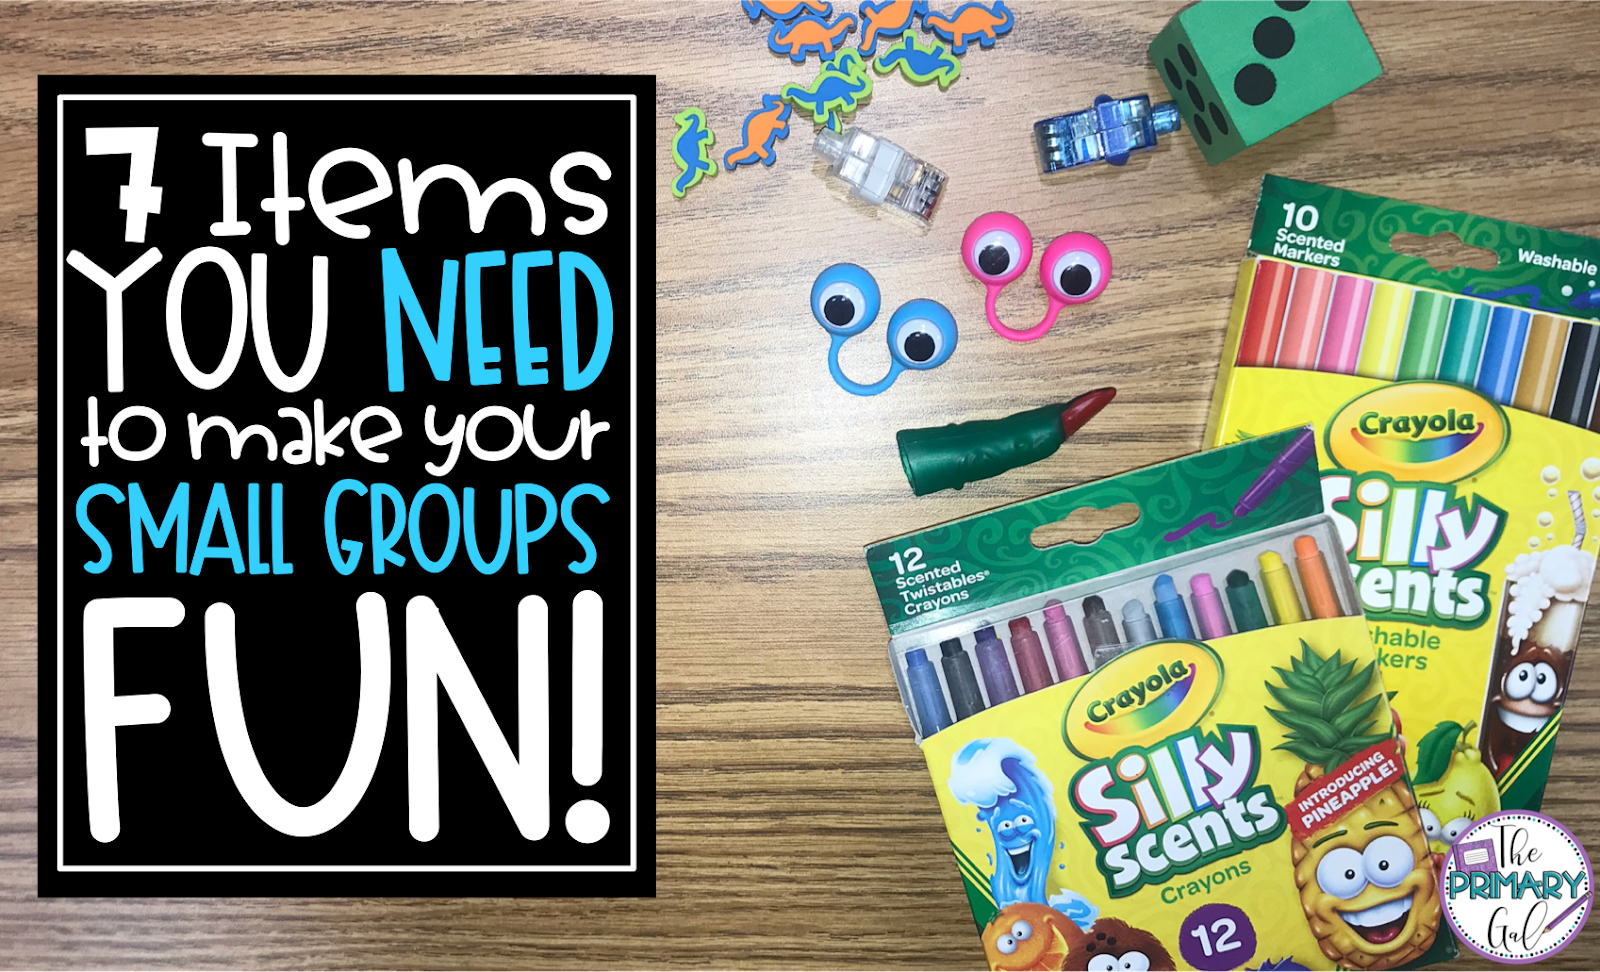 7 Items You NEED to Make Your Small Groups Fun